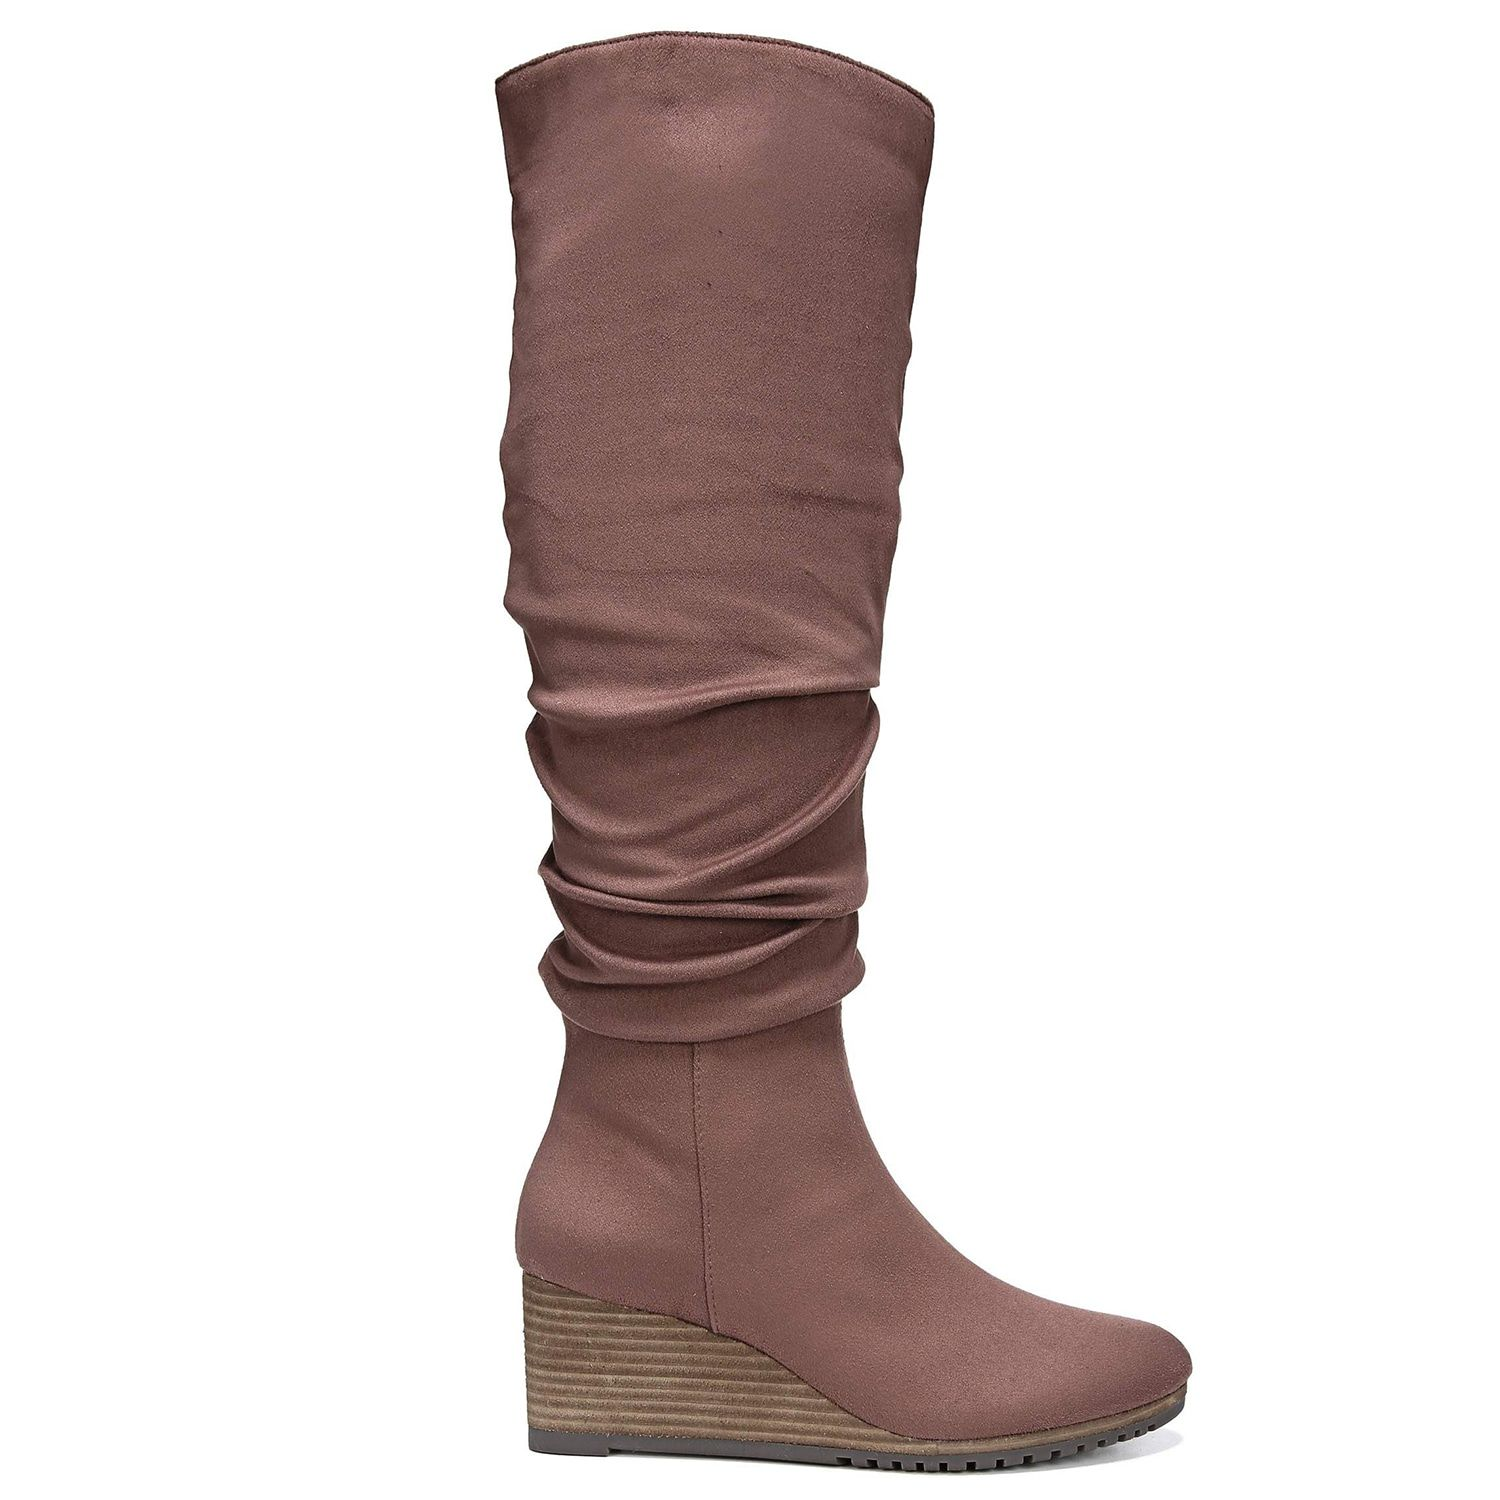 09c649aee43b7 Dr. Scholl's Central Women's Wedge Knee High Boots #Central, #Women ...